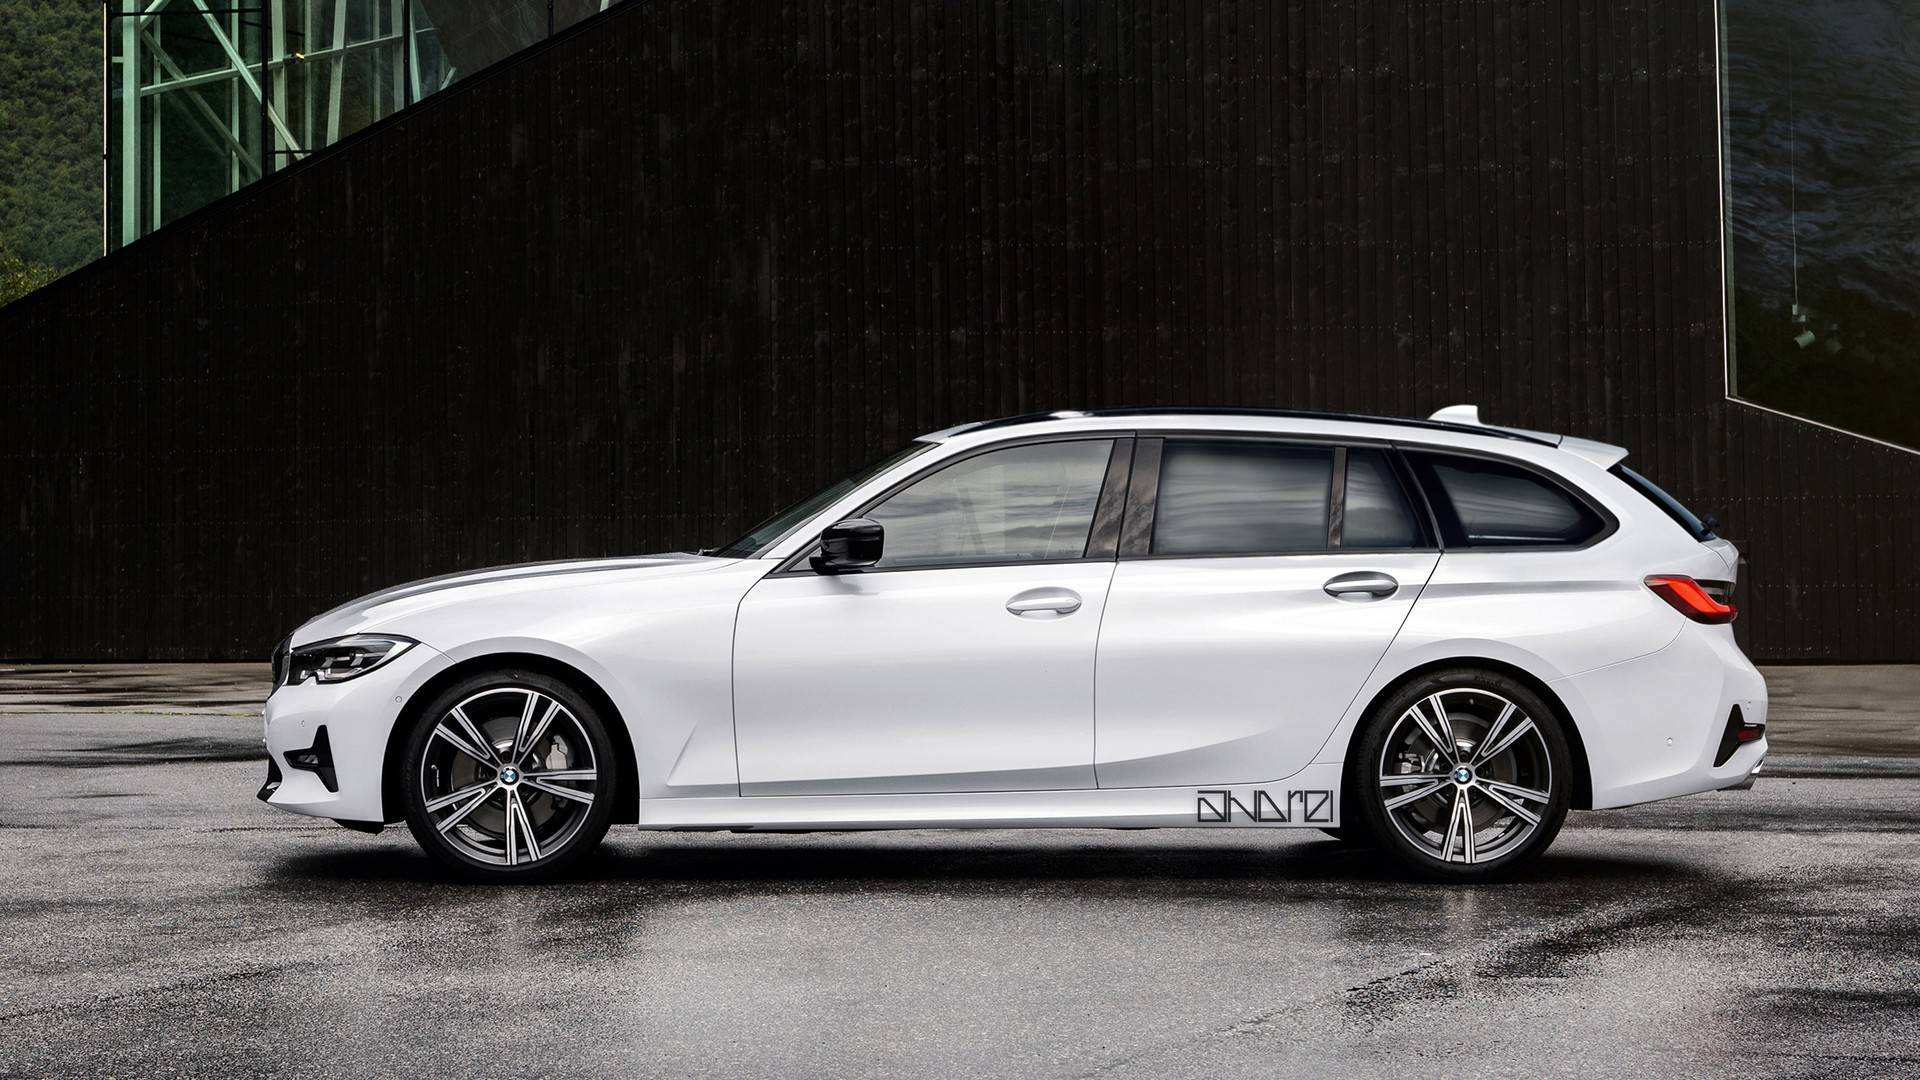 87 All New 2020 Bmw Sport Wagon Redesign and Concept by 2020 Bmw Sport Wagon